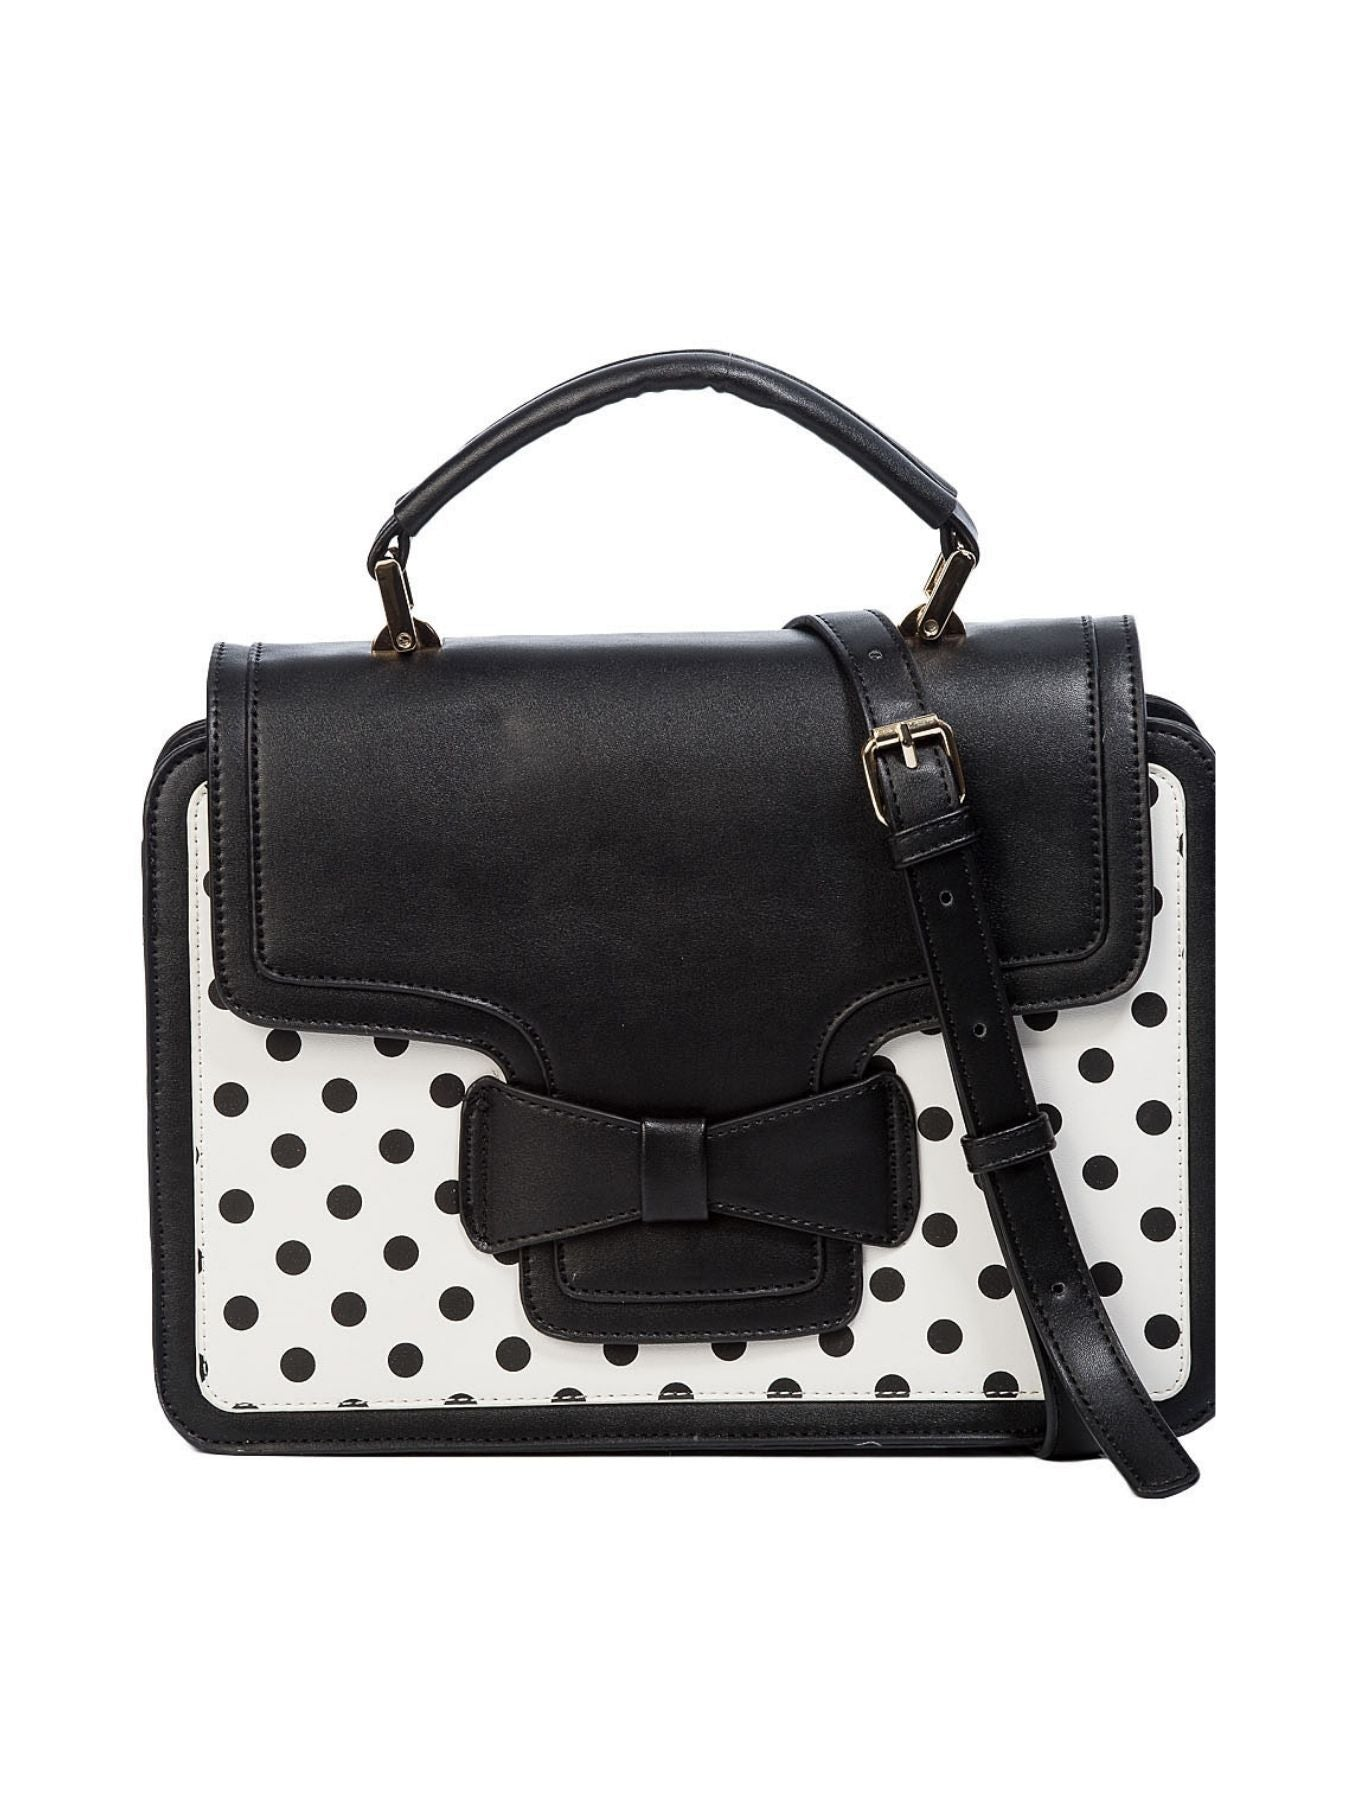 Dancing Days 50s Elegant Spots Black/White Polka Dot Handbag - Bohemian Finds